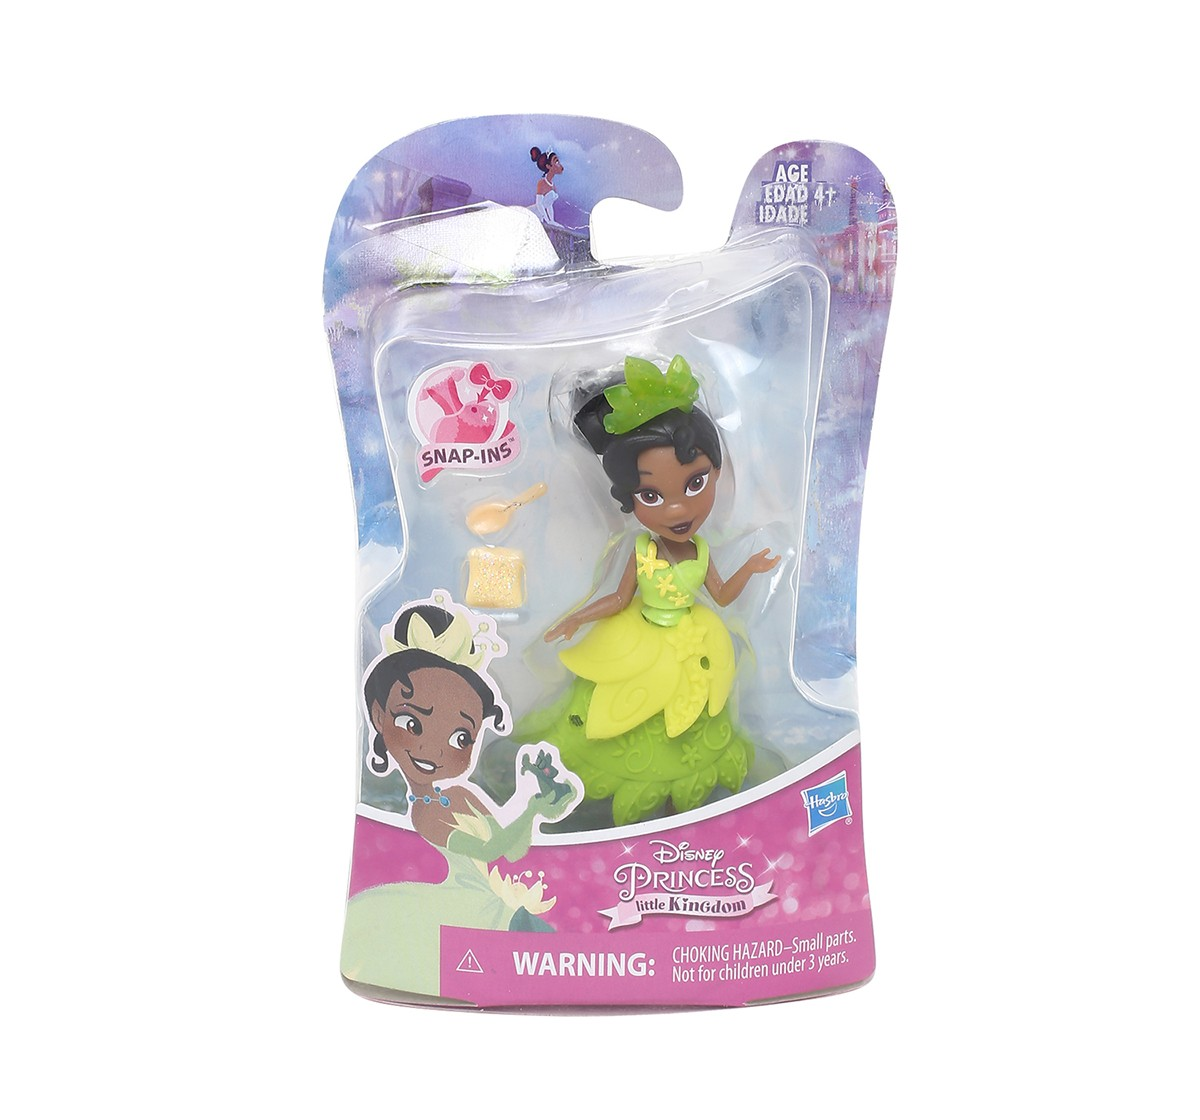 Disney Princess Little Kingdom Tiana Snap In Dolls & Accessories for Girls age 4Y+ (Green)